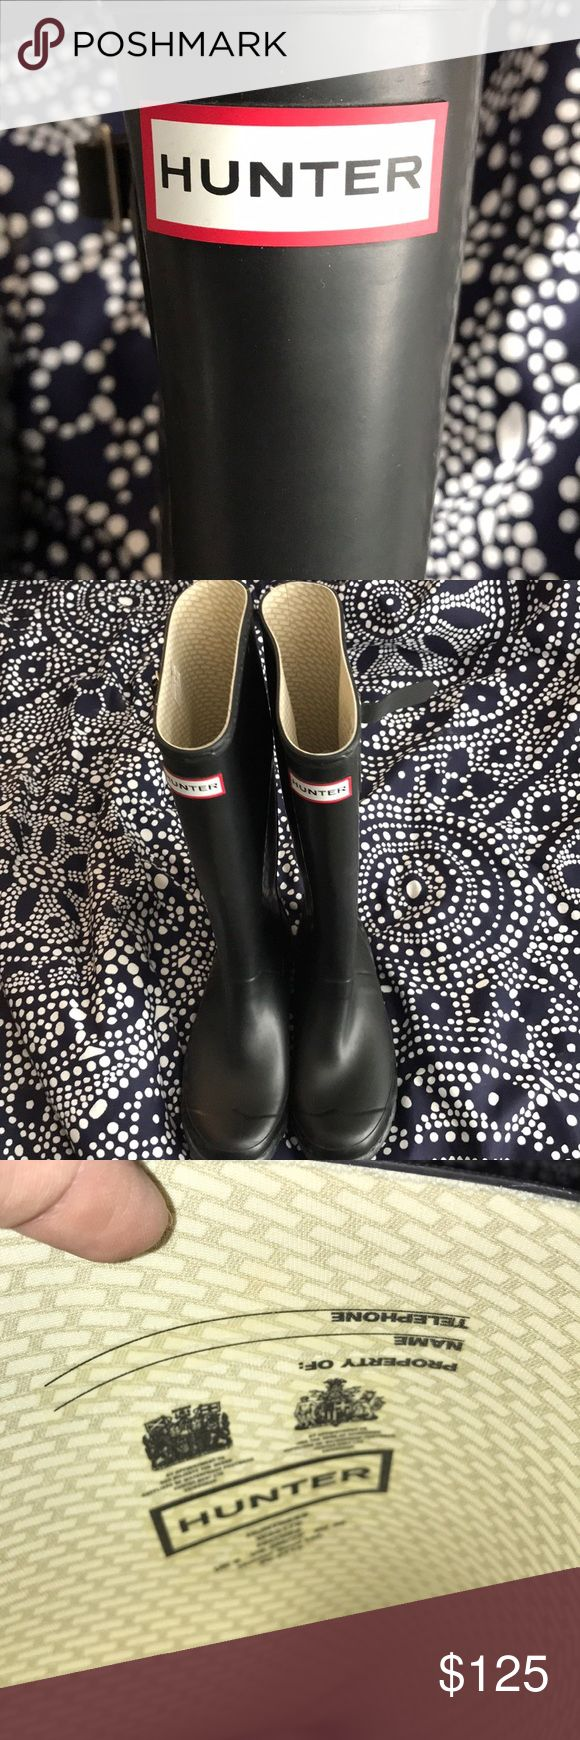 """Hunter Boots: Huntress (Wide Calf), Size 7. Worn maybe once before my calves screamed """"too tight""""? Matte Black. Hunter Boots Shoes Winter & Rain Boots"""